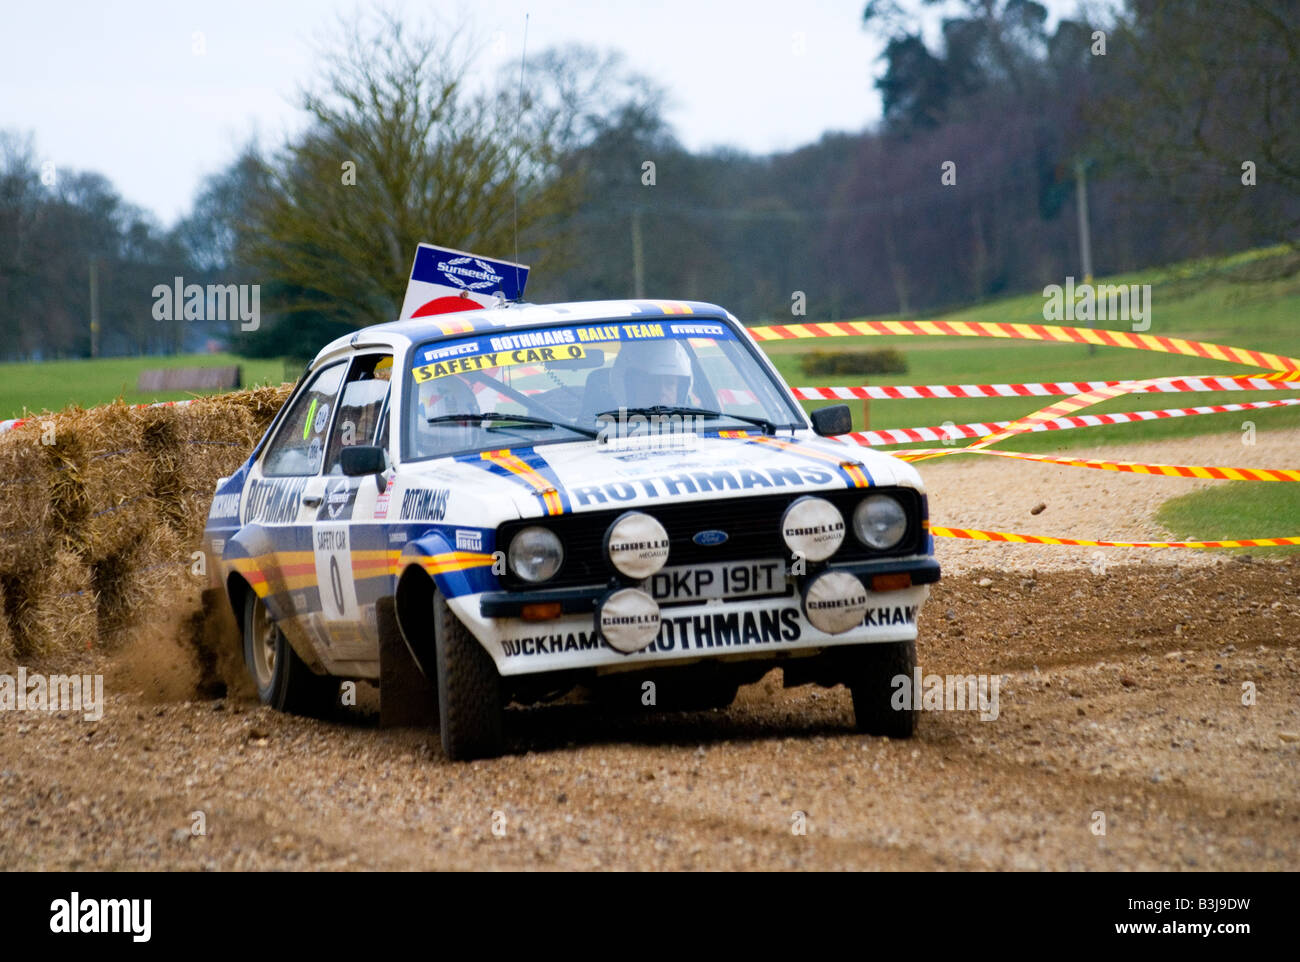 Rothmans Ford Escort MK2 Rally Car Stock Photo: 19456917 - Alamy